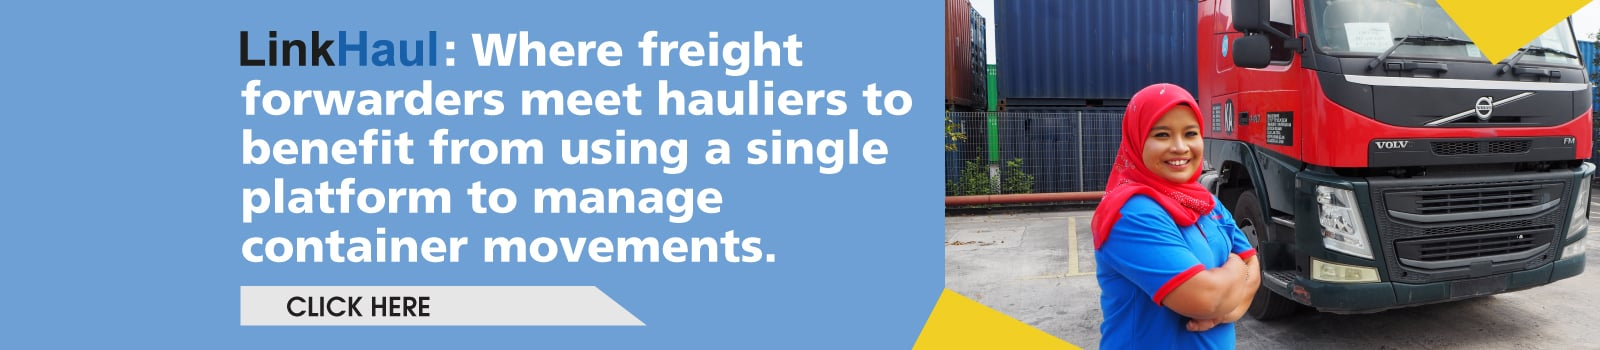 Linkhaul - Connecting Hauliers and Forwarders